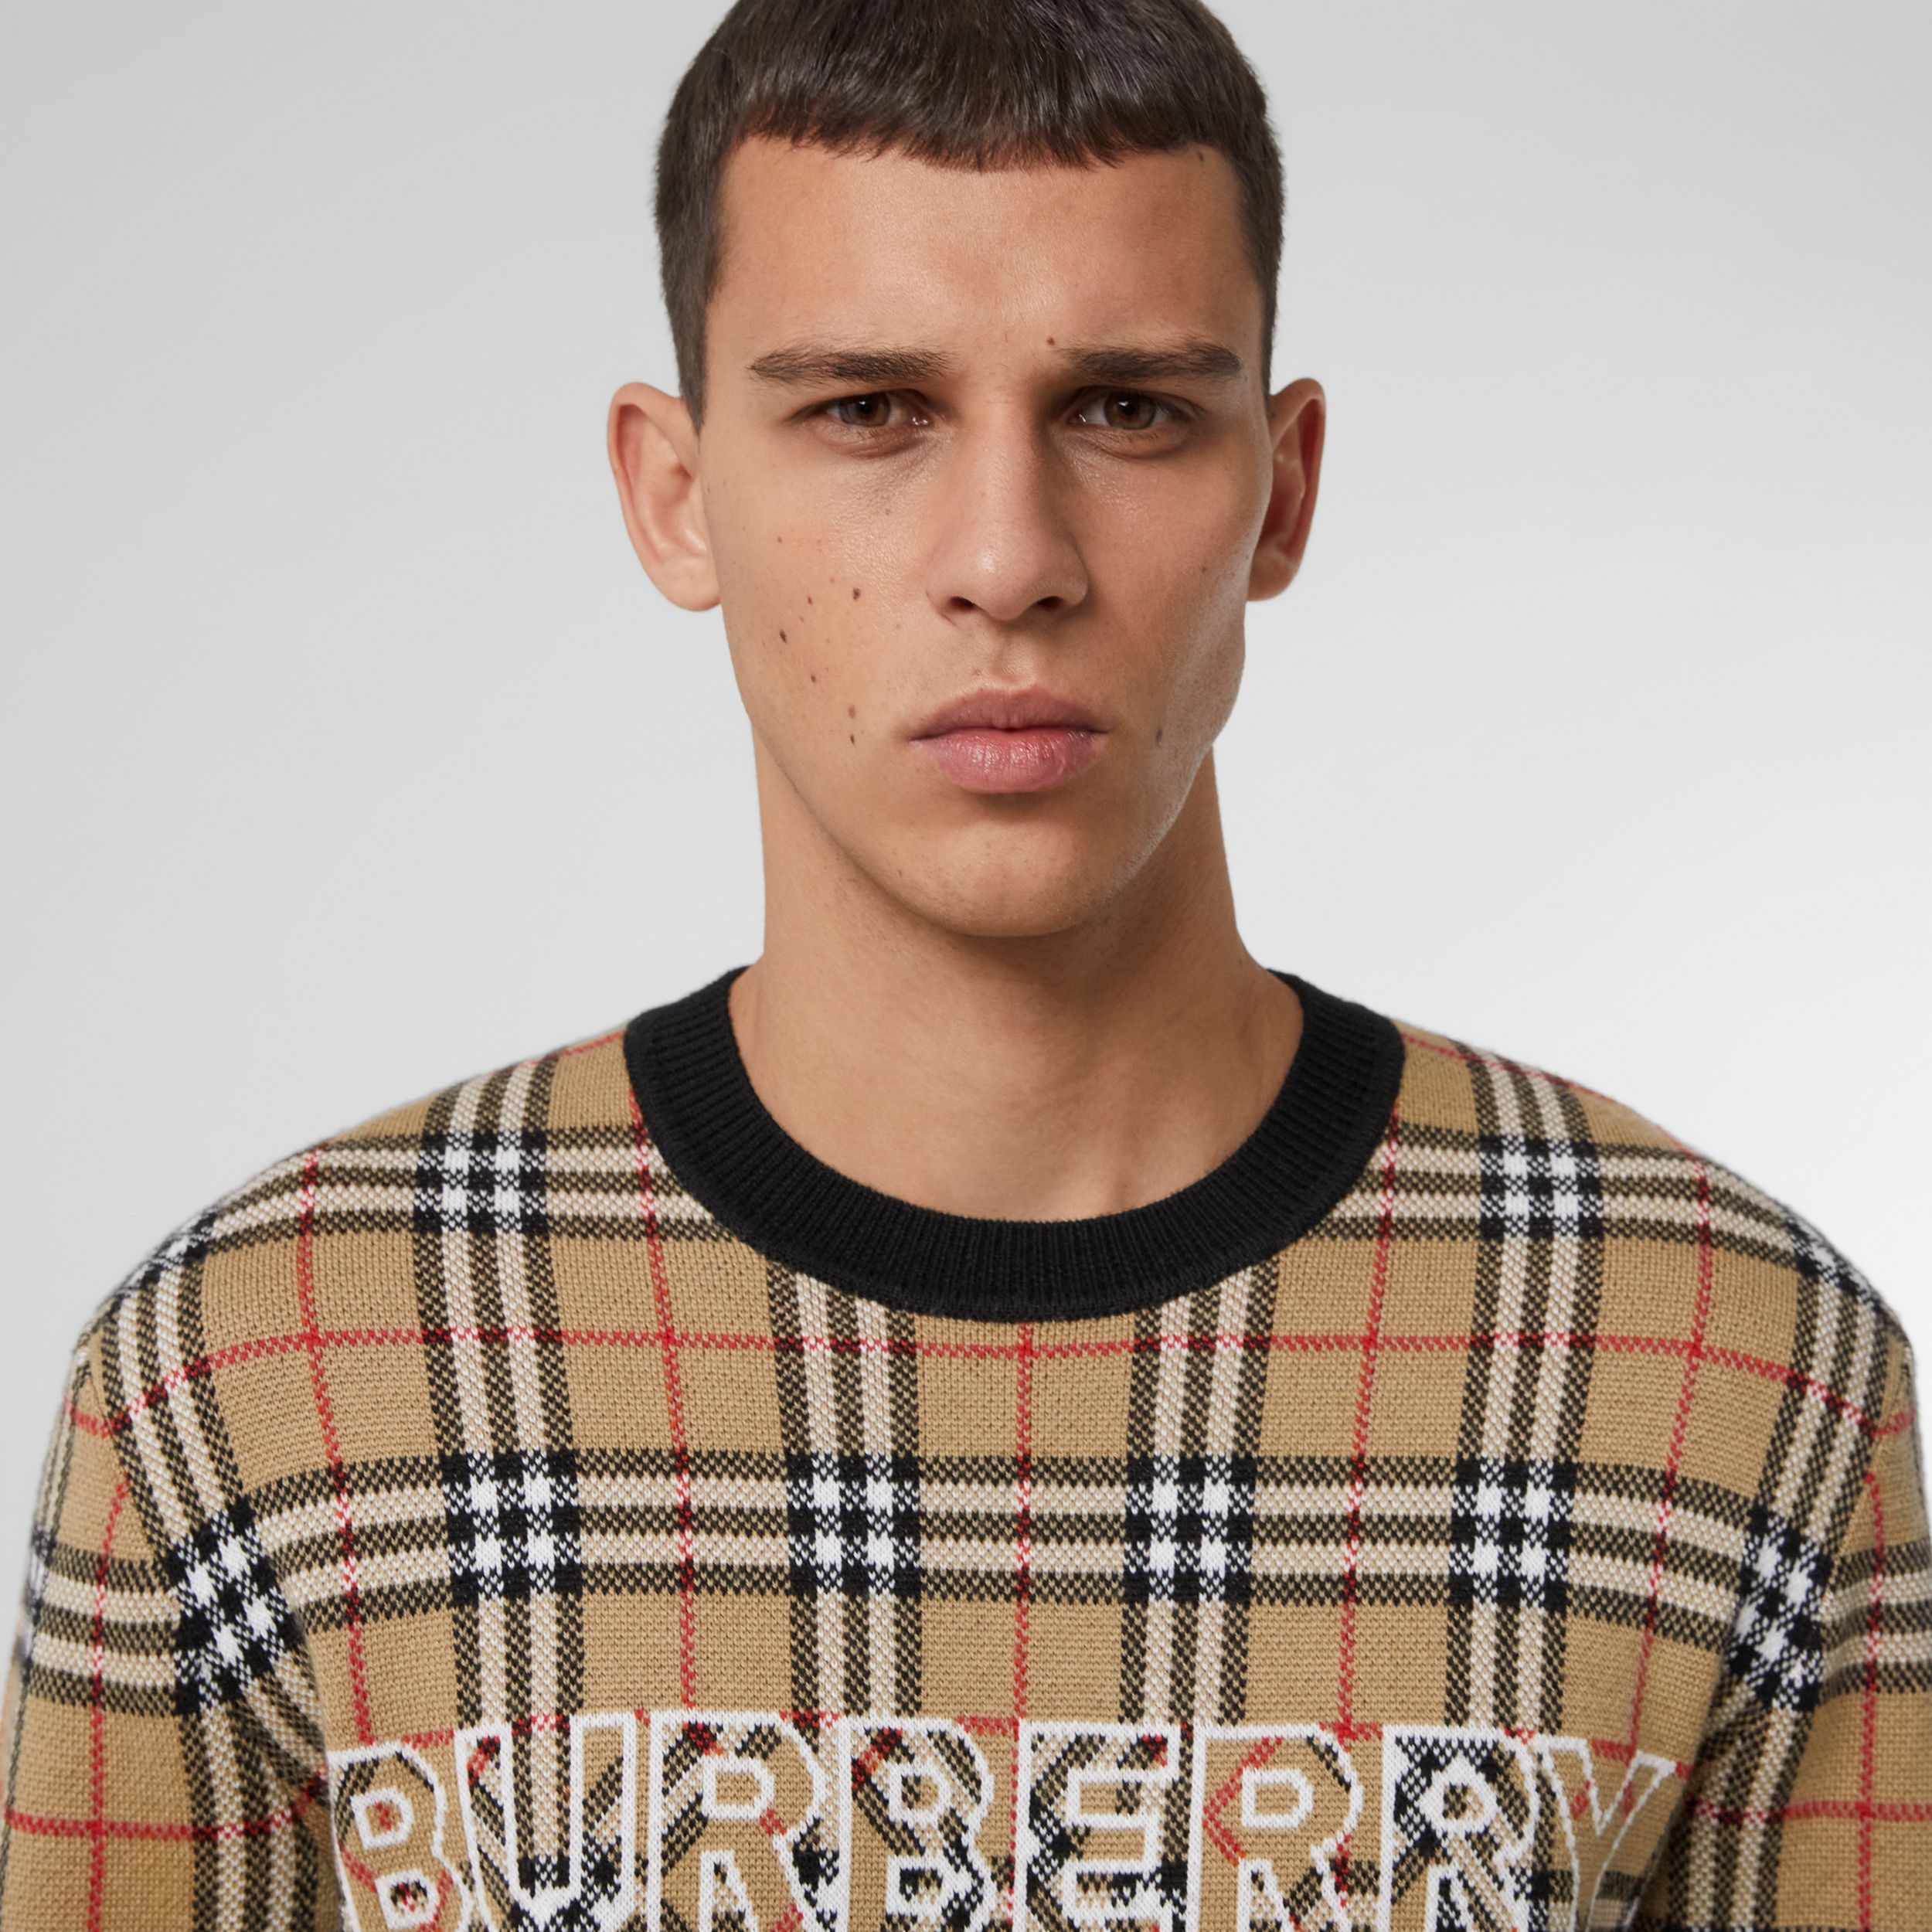 Logo Check Wool Cotton Jacquard Sweater in Archive Beige - Men | Burberry - 2